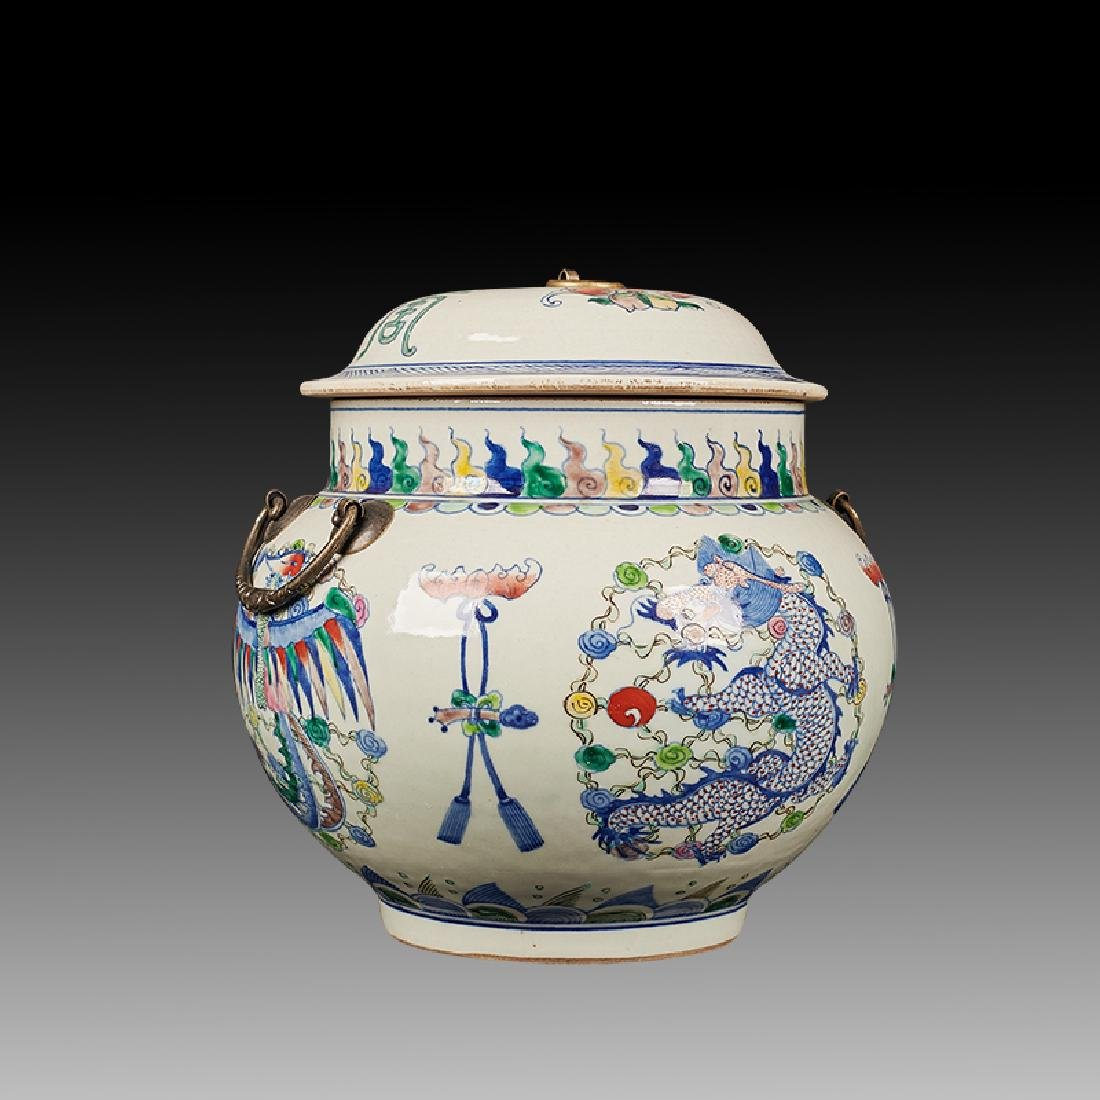 Chinese Doucai Porcelain Ginger Jar - 3